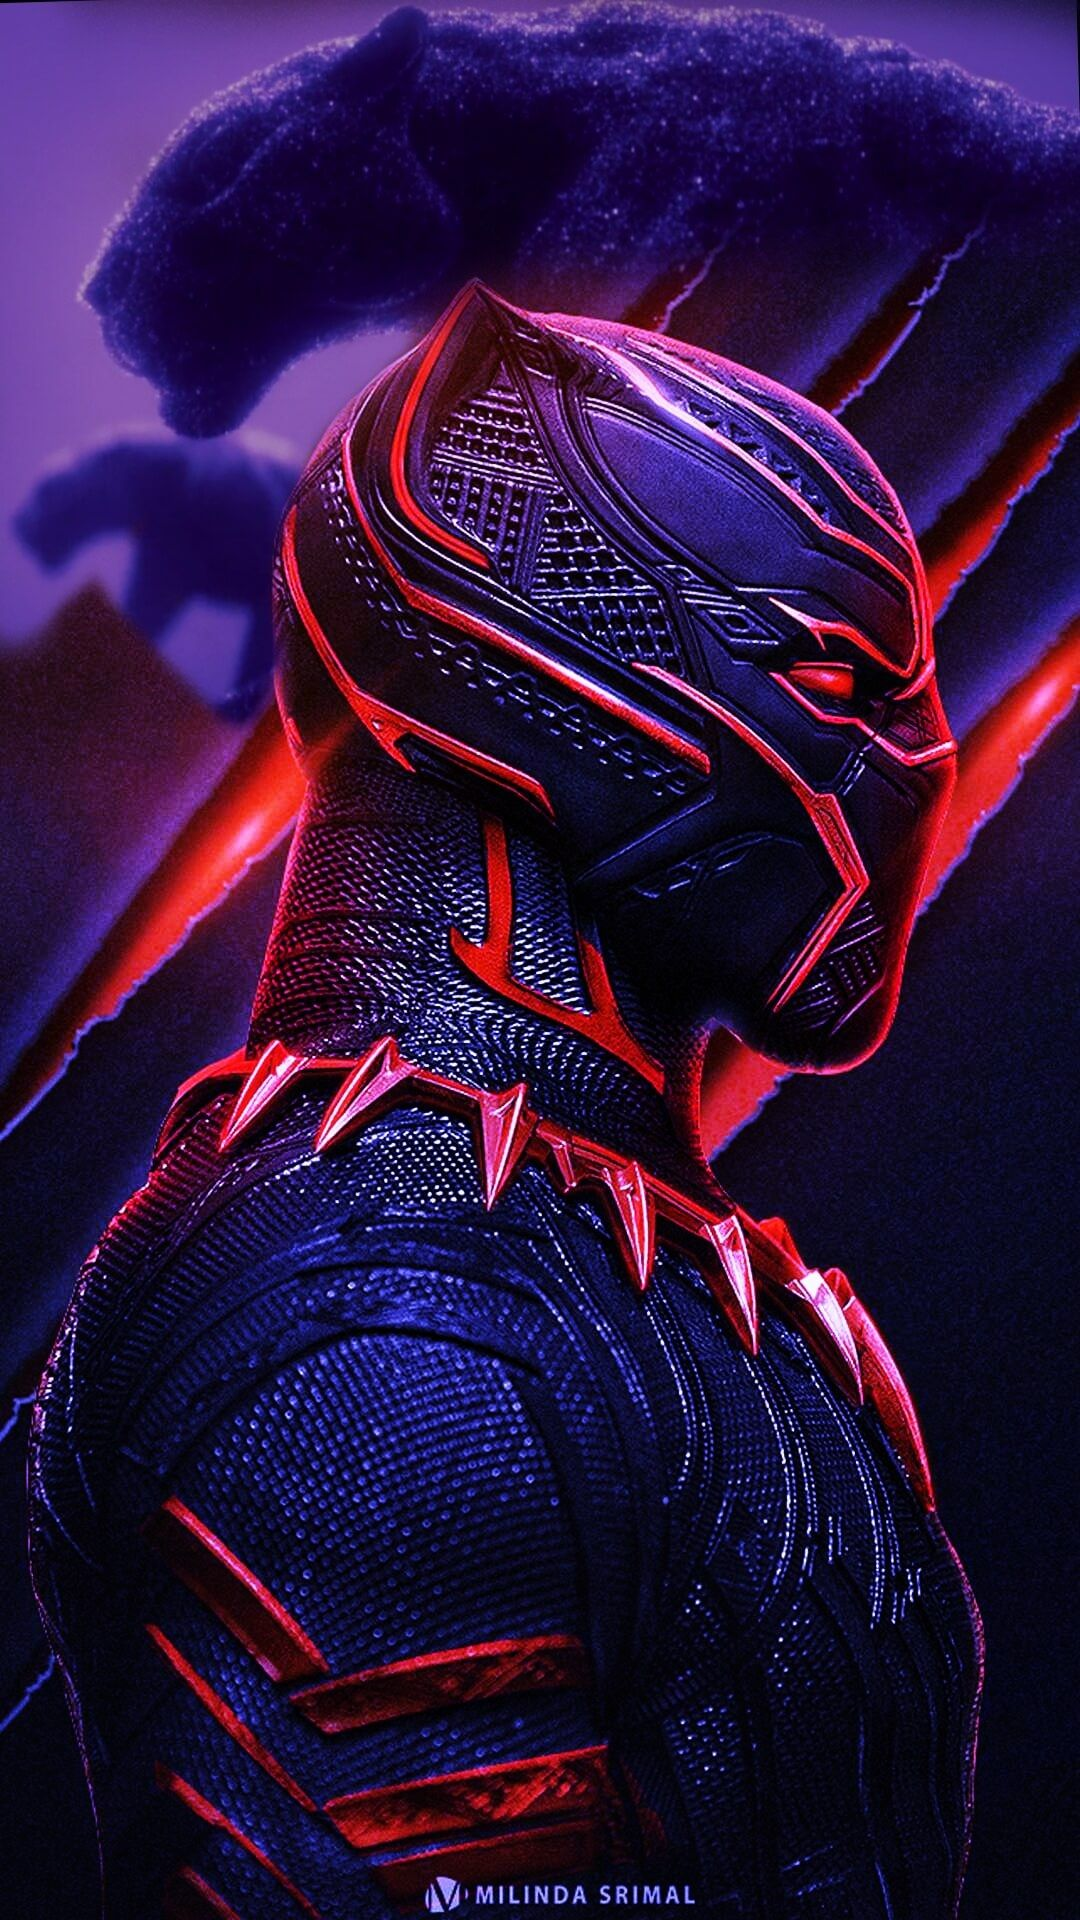 Wallpaper For Iphone 11 Pro Black Panther Marvel Black Panther Art Black Panther Hd Wallpaper